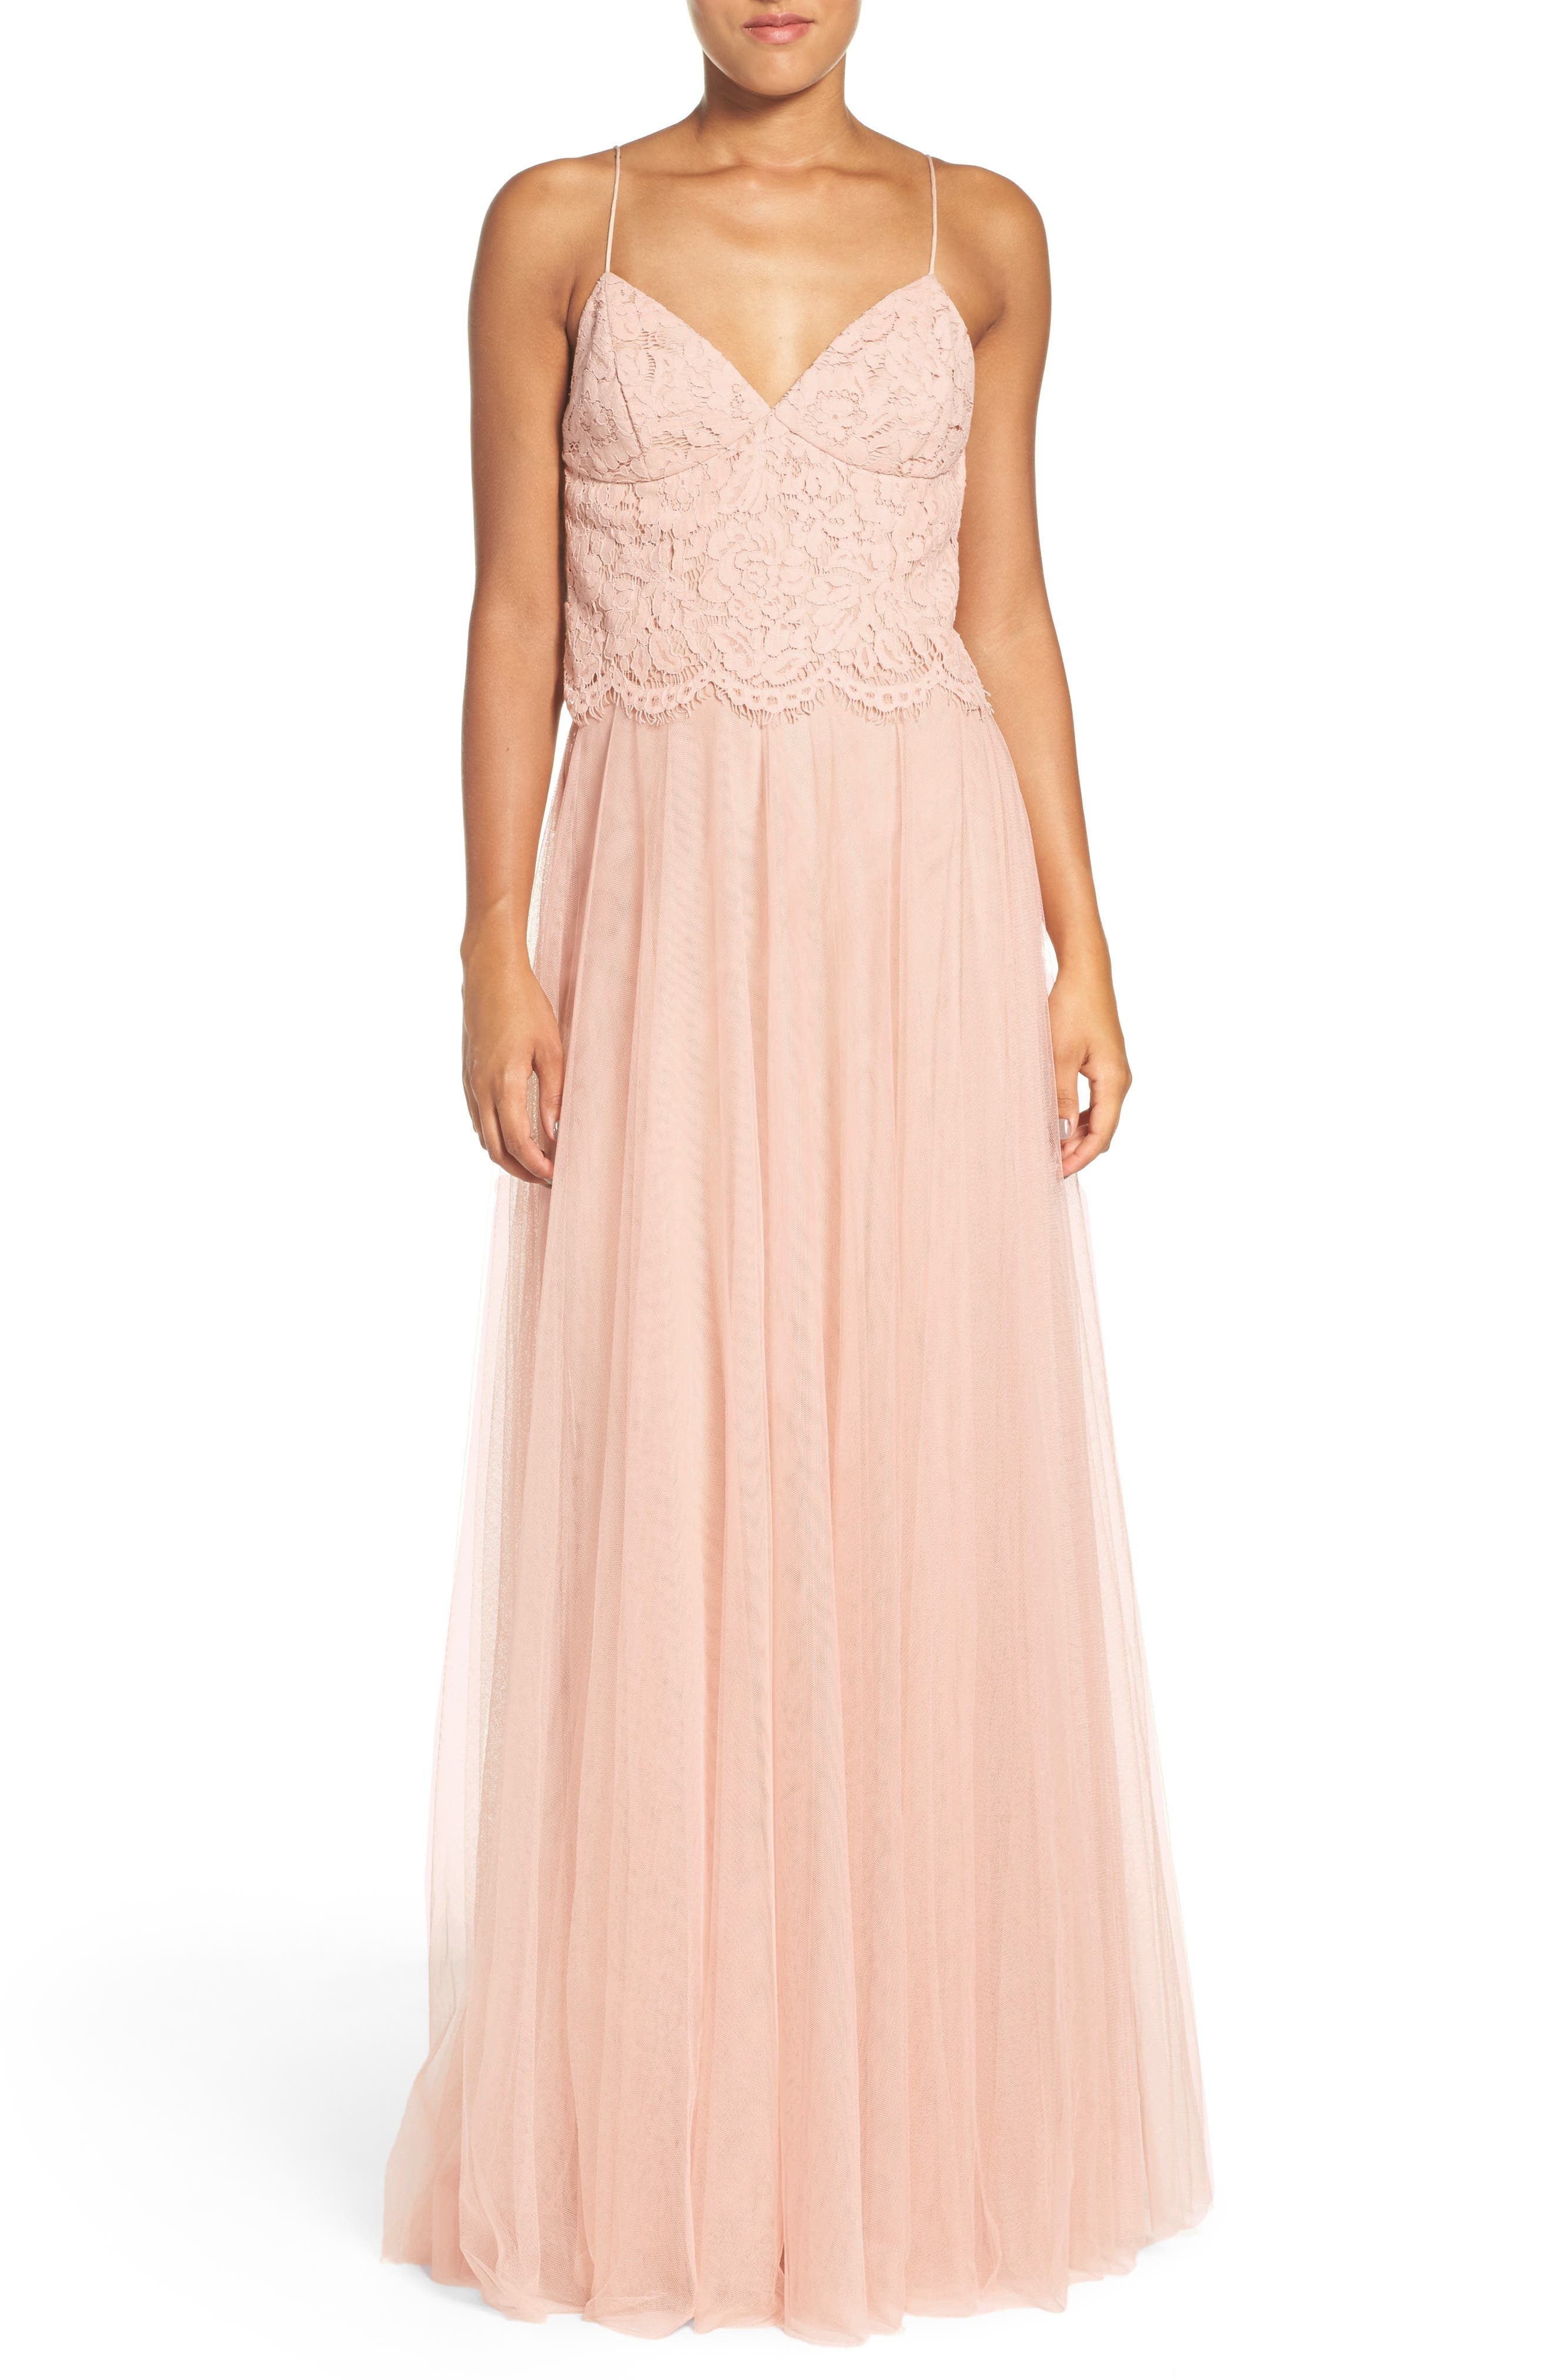 Winslow Long Tulle A-Line Skirt,                             Alternate thumbnail 7, color,                             CAMEO PINK